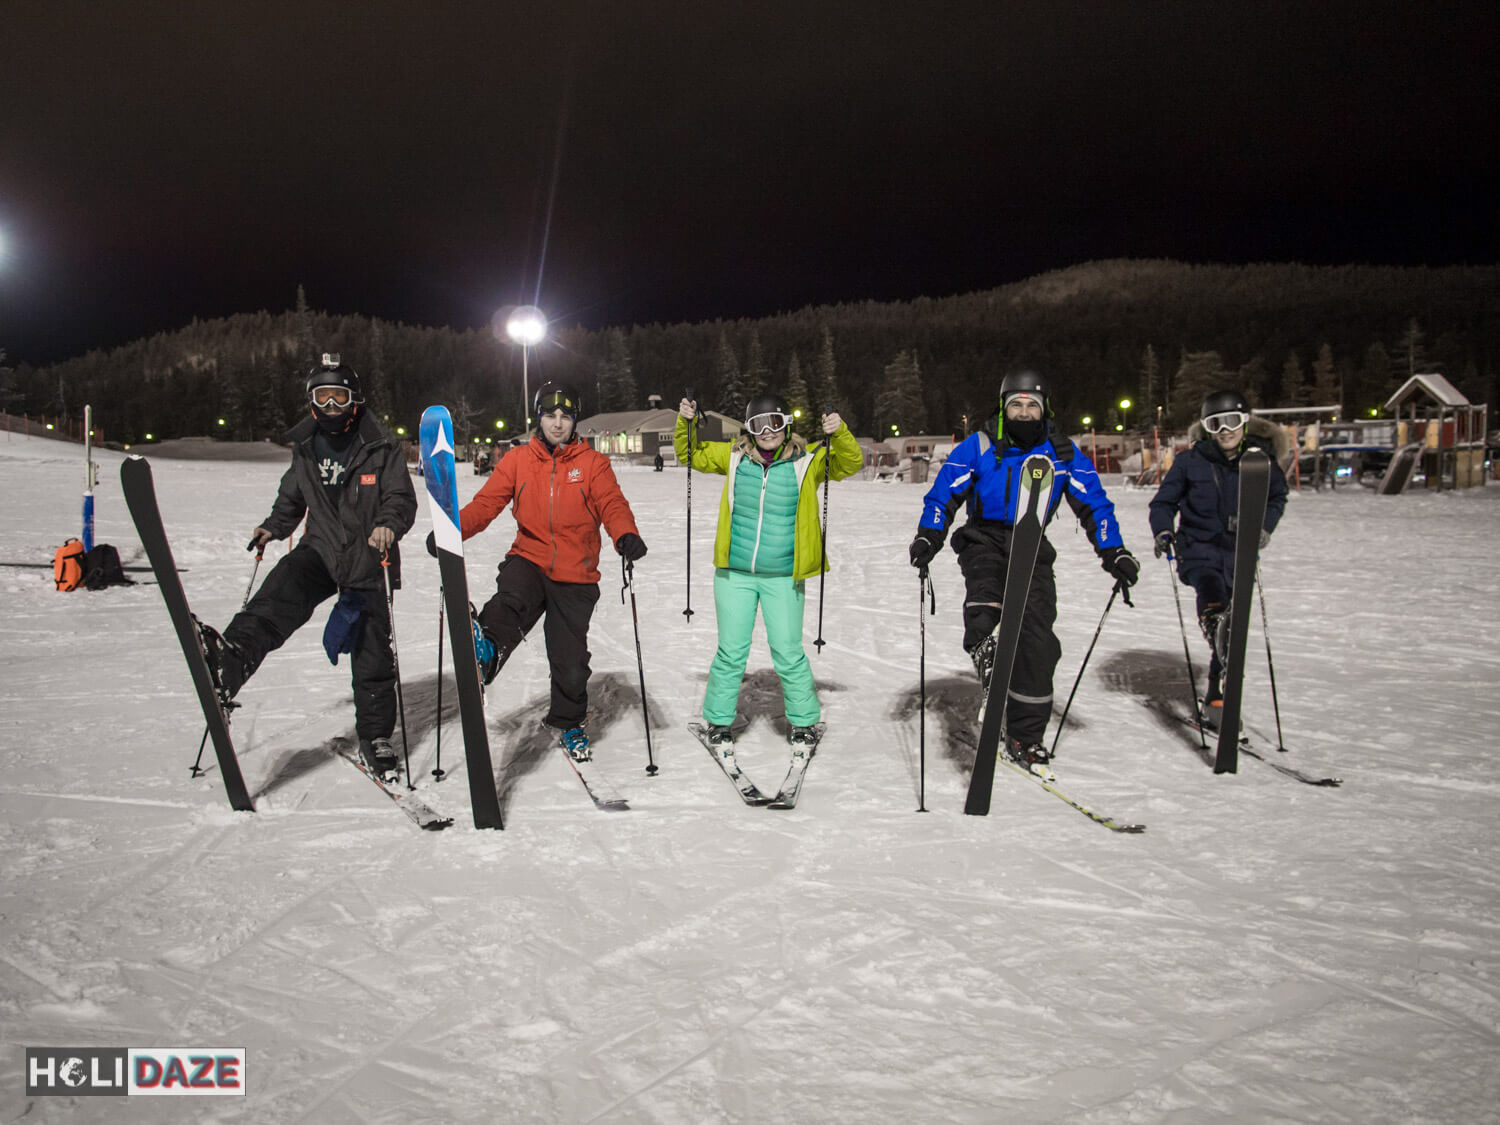 Skiing in Ruka-Kuusamo, Finland, up in the Arctic Circle was an experience that proved travel is priceless